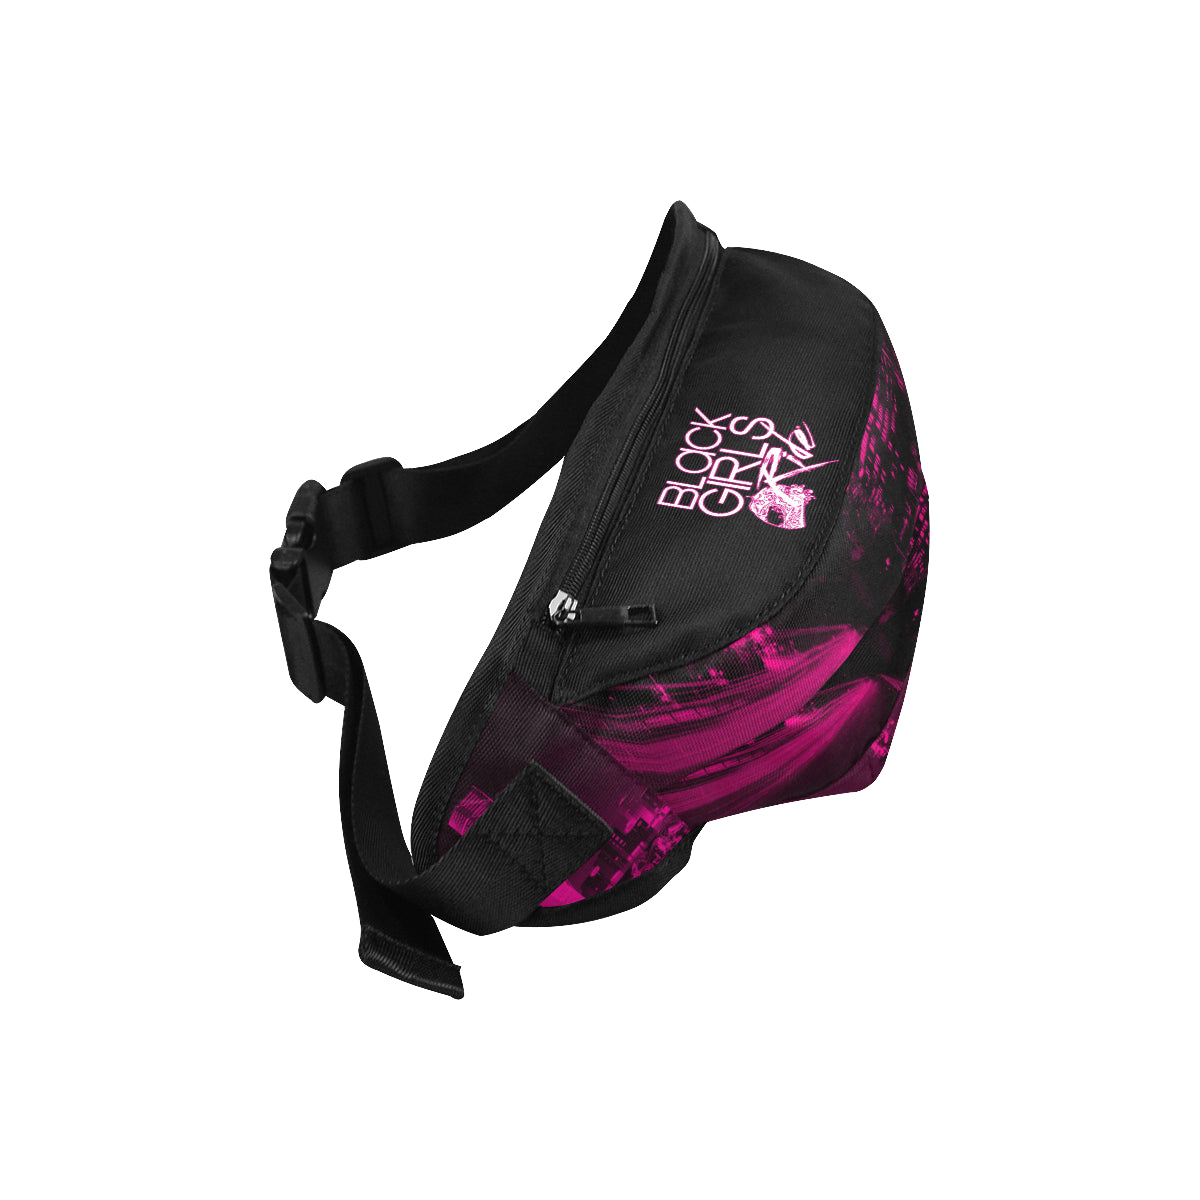 BGR Bike Nite Waist Bag